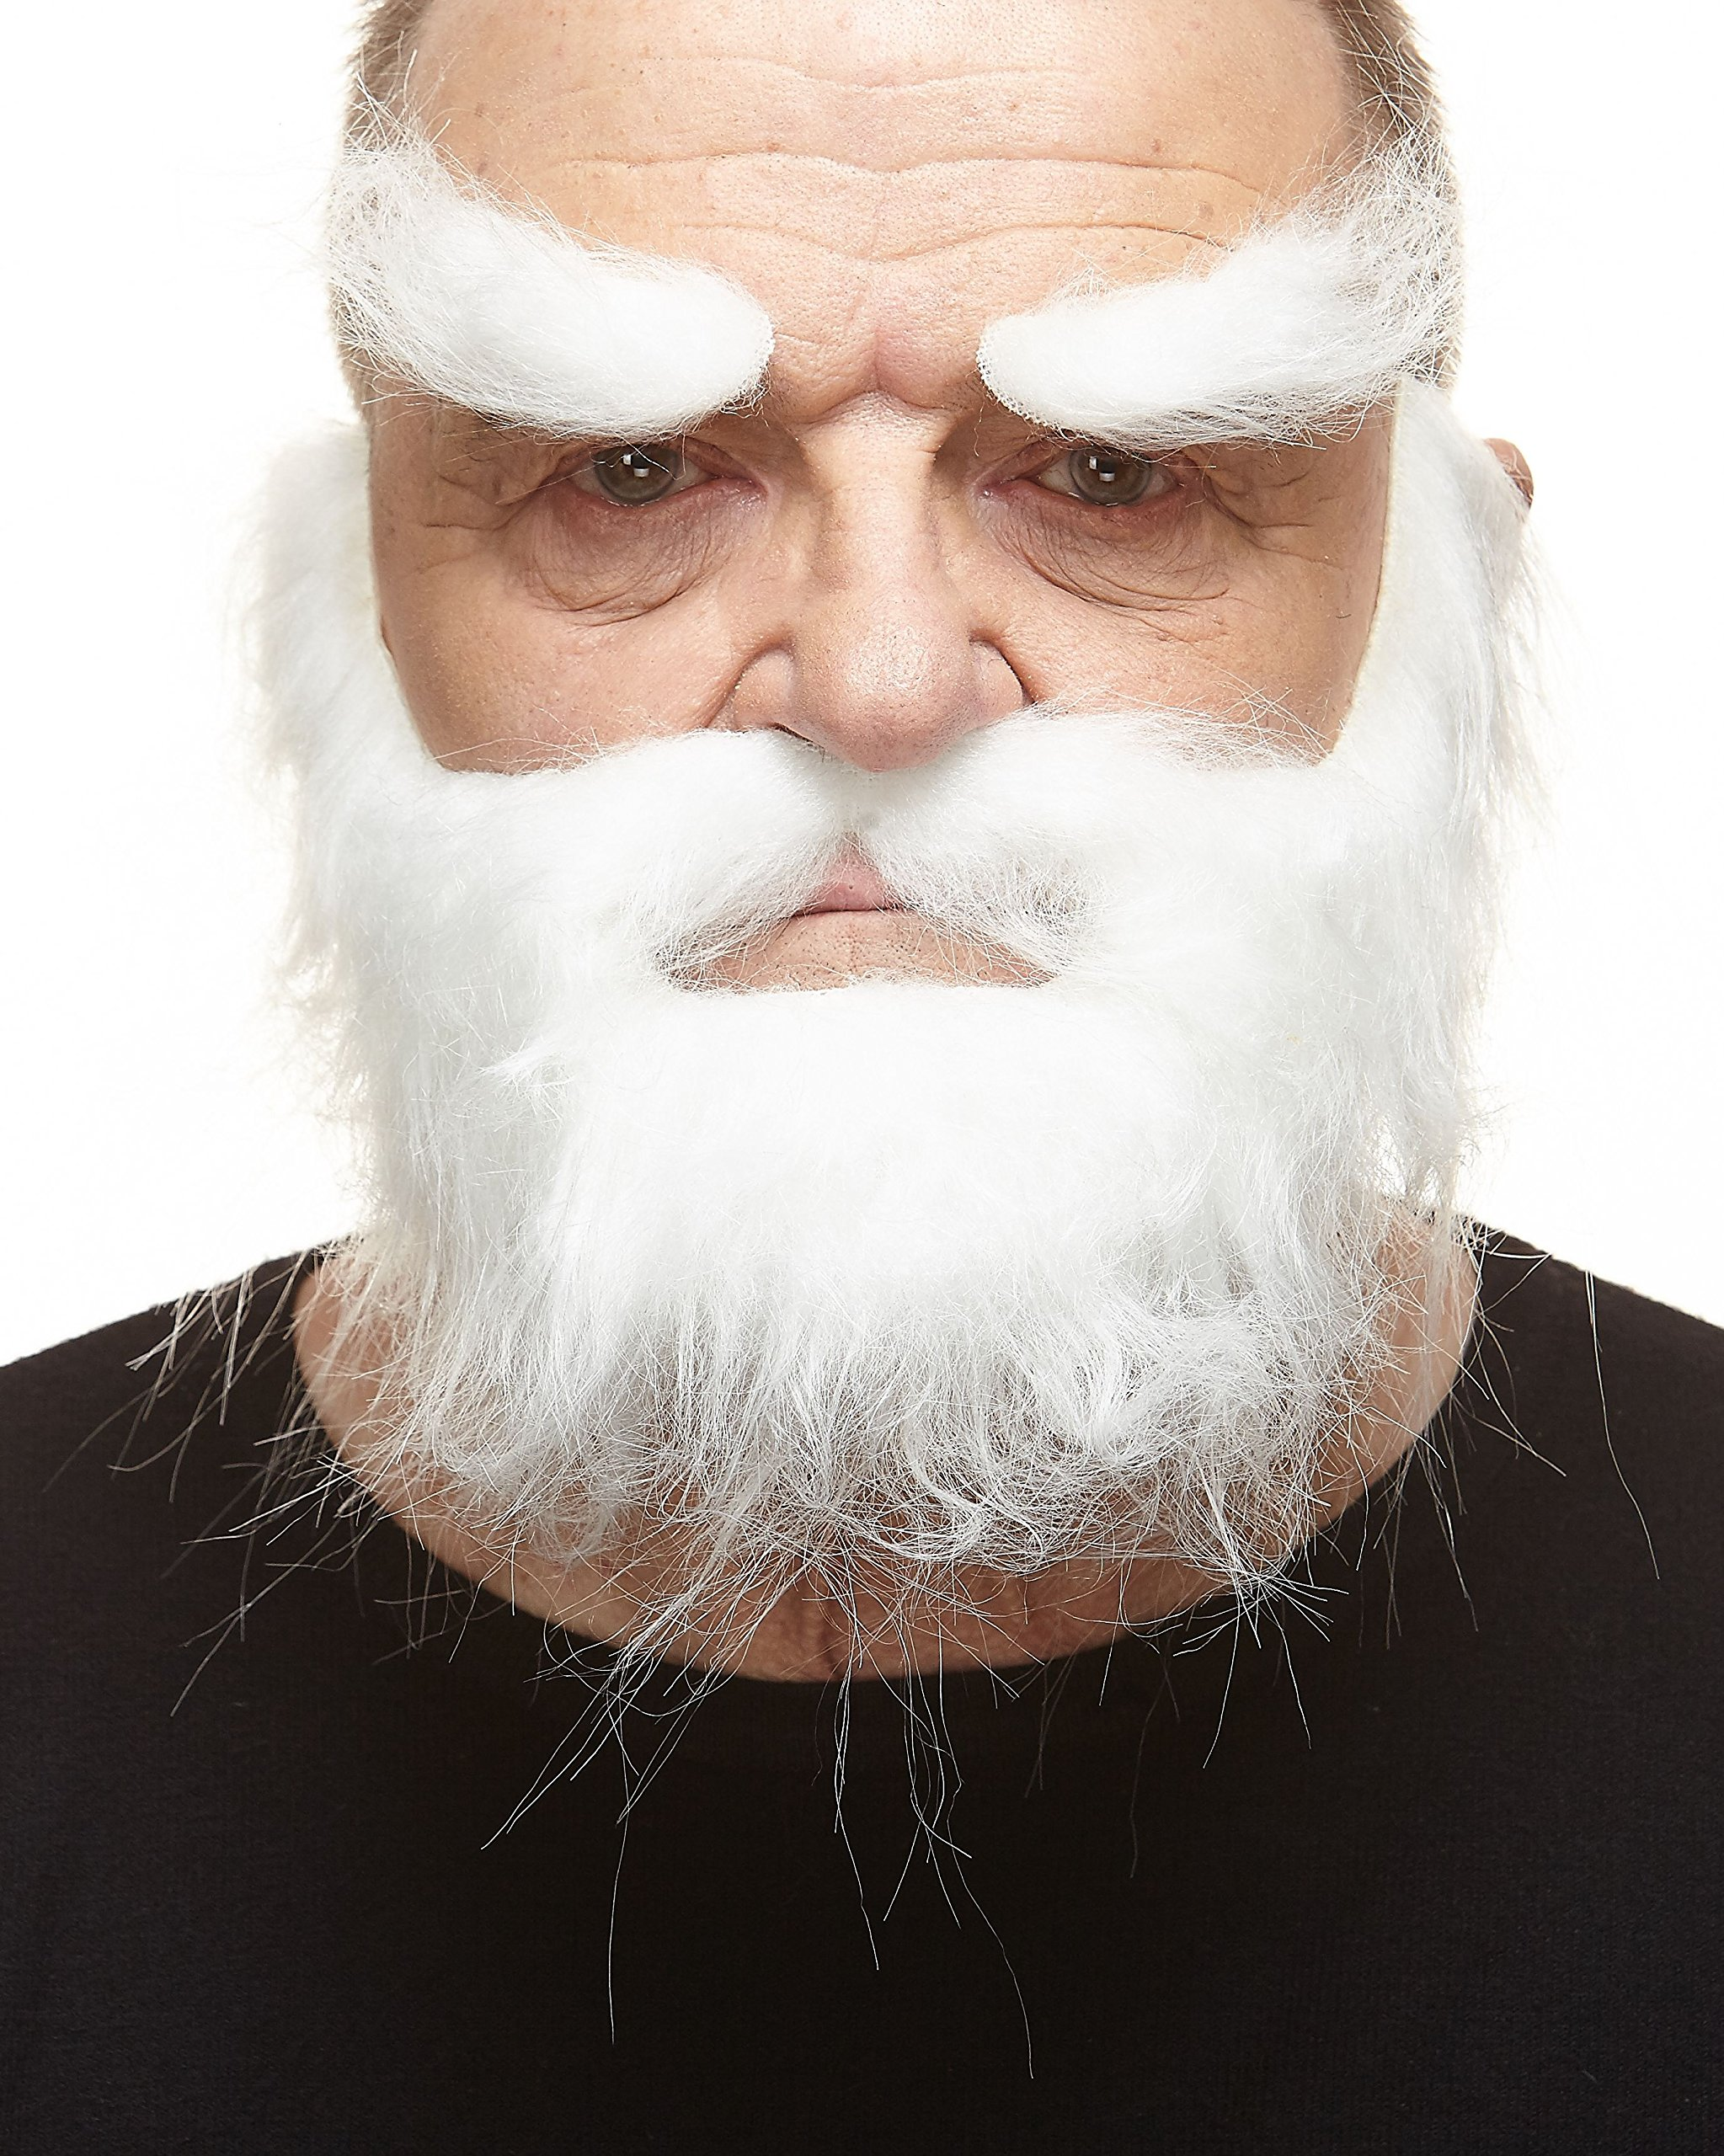 Mustaches Self Adhesive, Novelty, Realistic, Fake, Traper Fake Beard, and Eyebrows, White Color